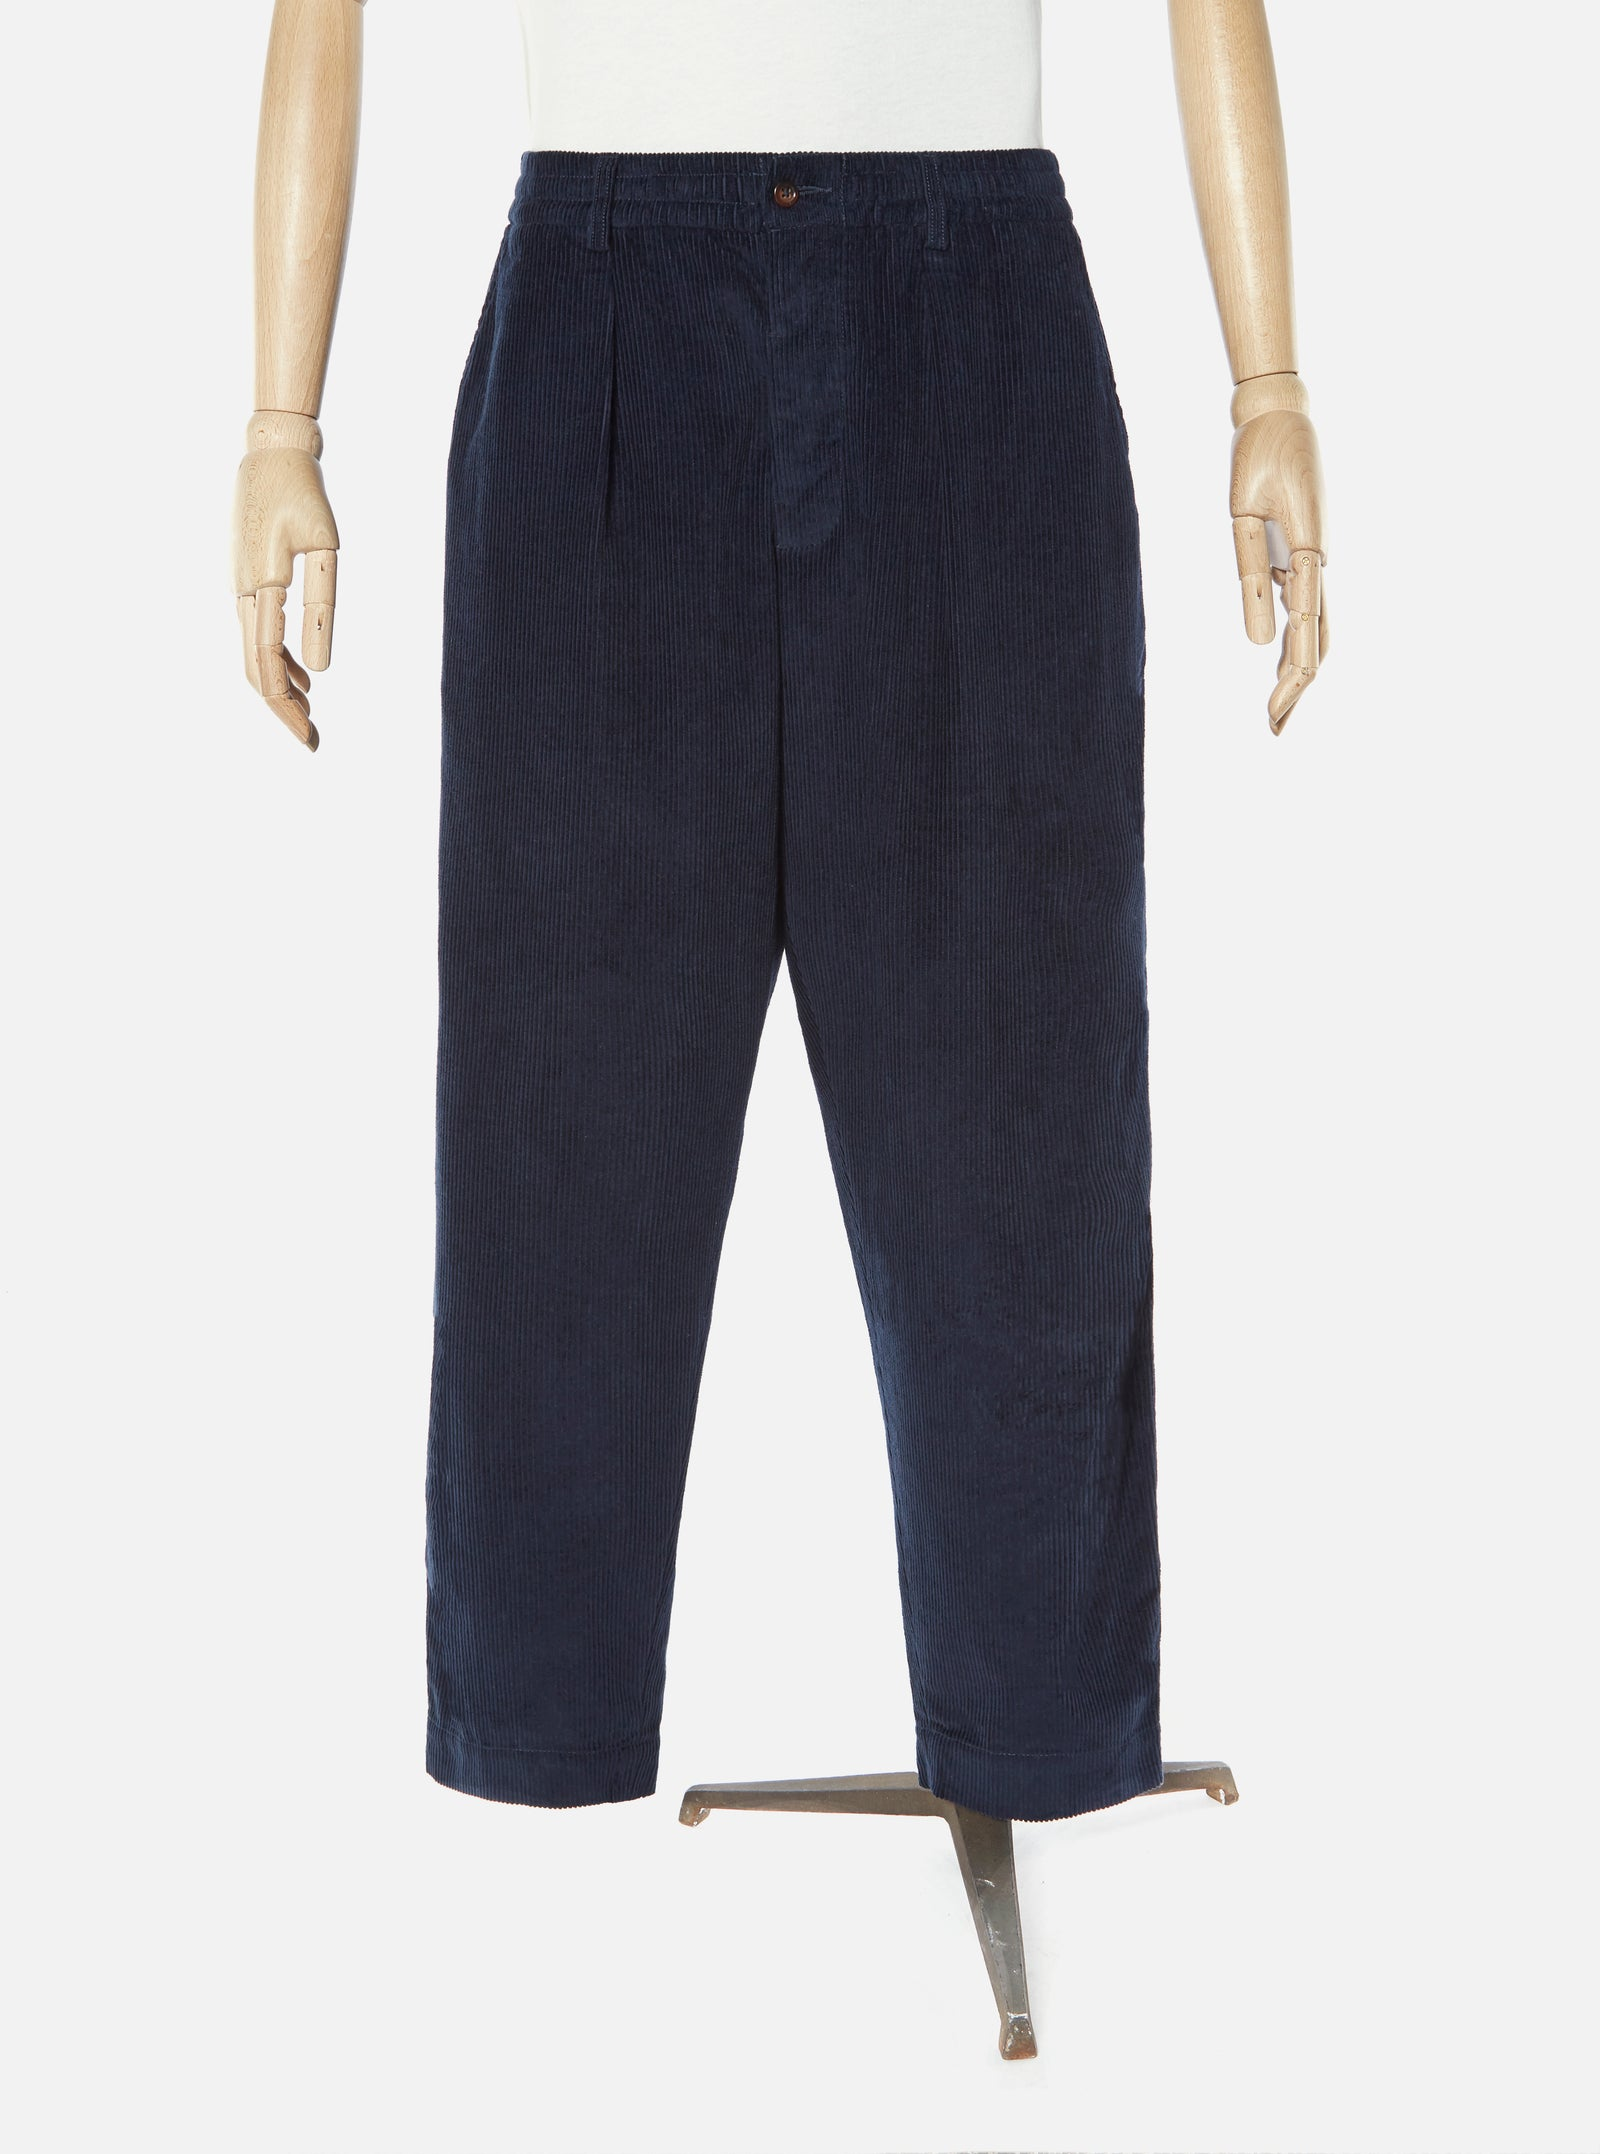 Universal Works Pleated Track Pant in Navy 8 Wale Cord